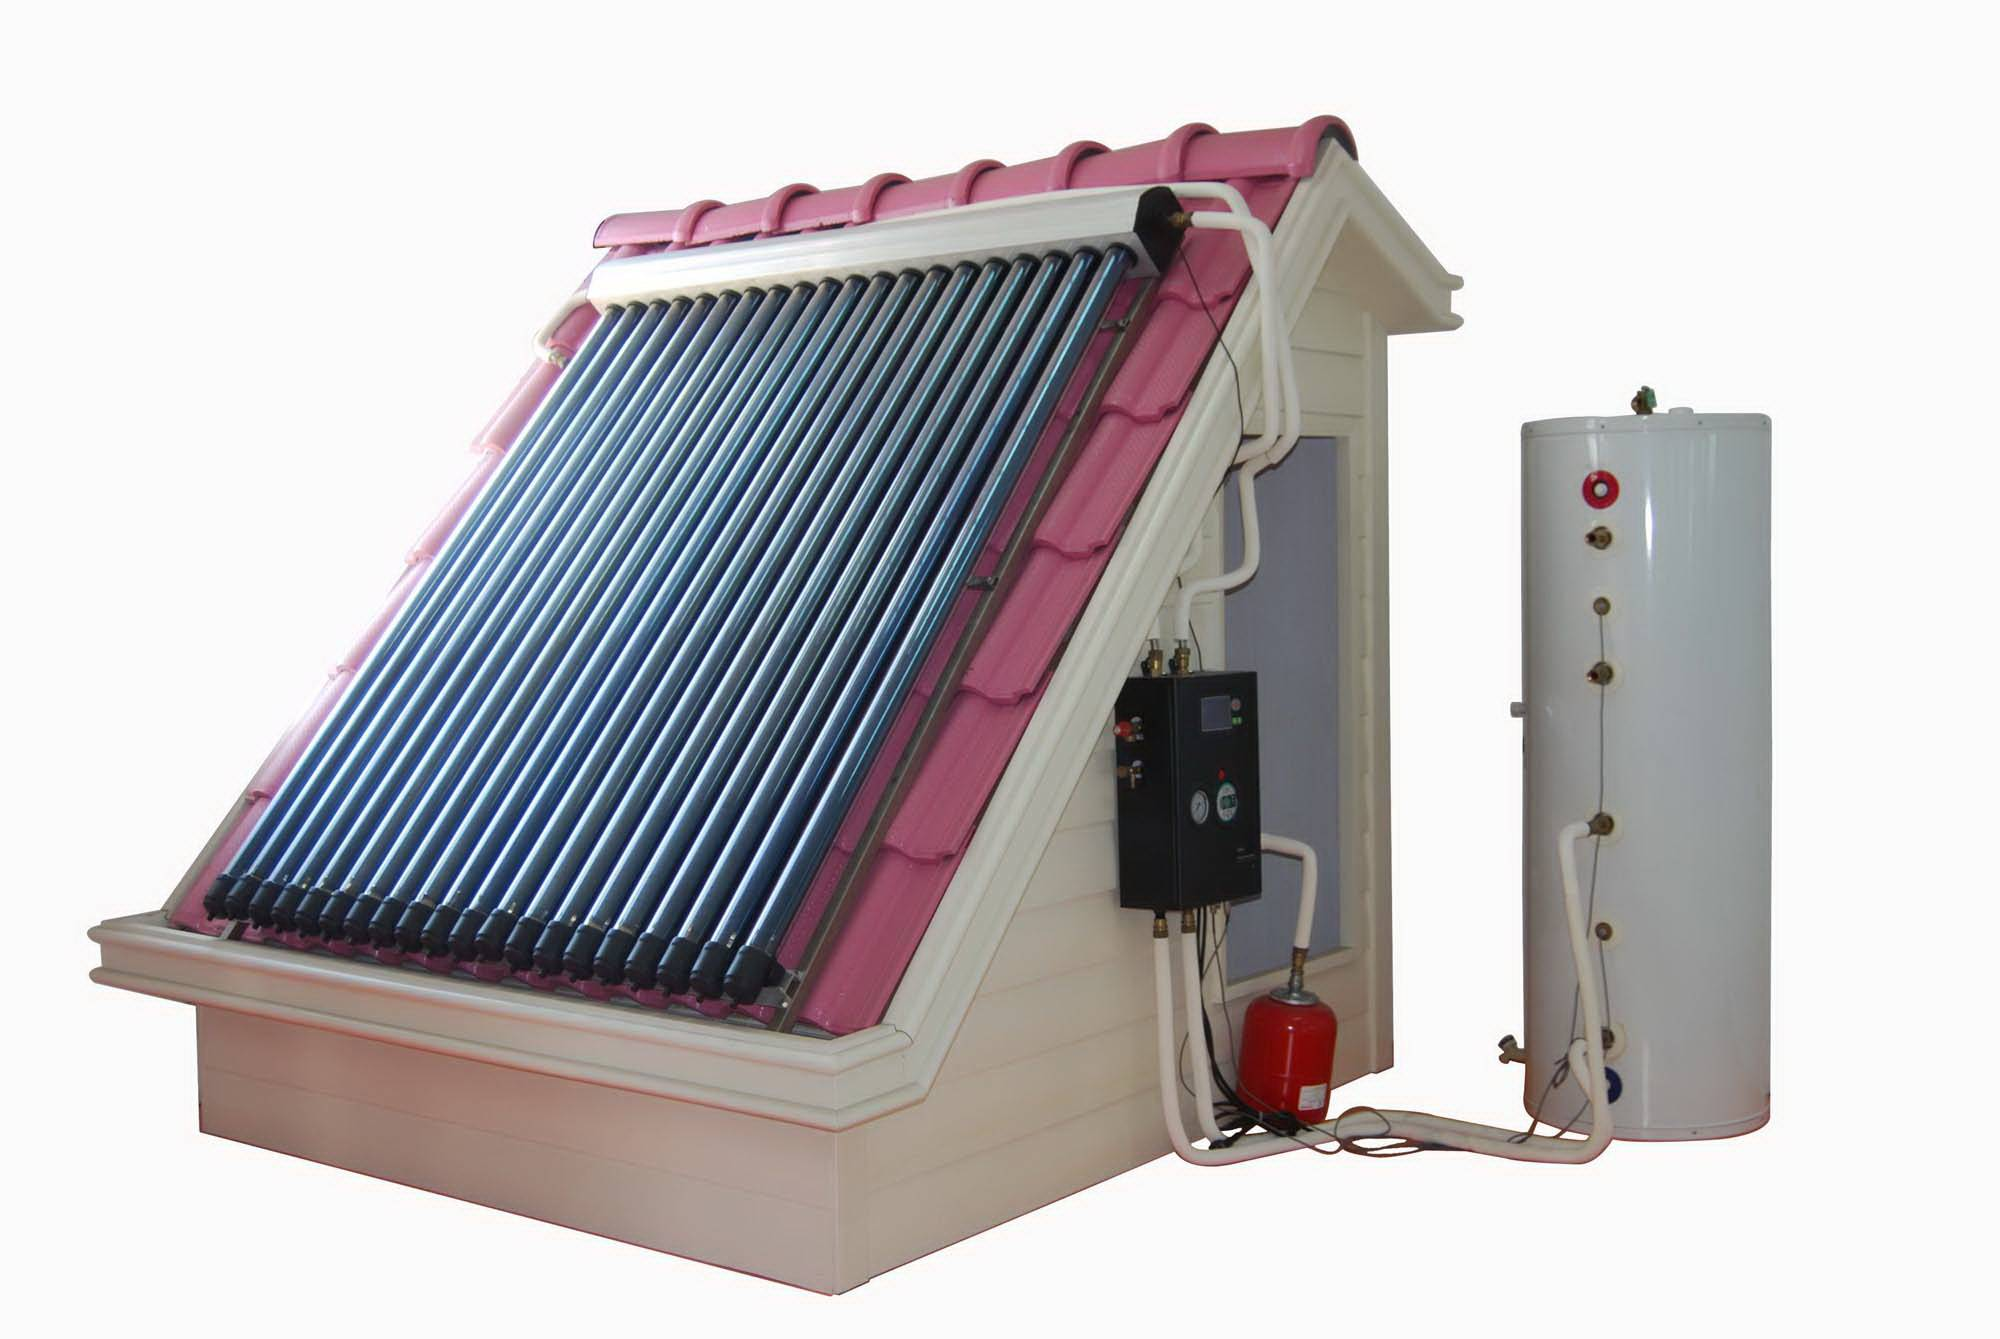 High efficient and convenient active solar heating system